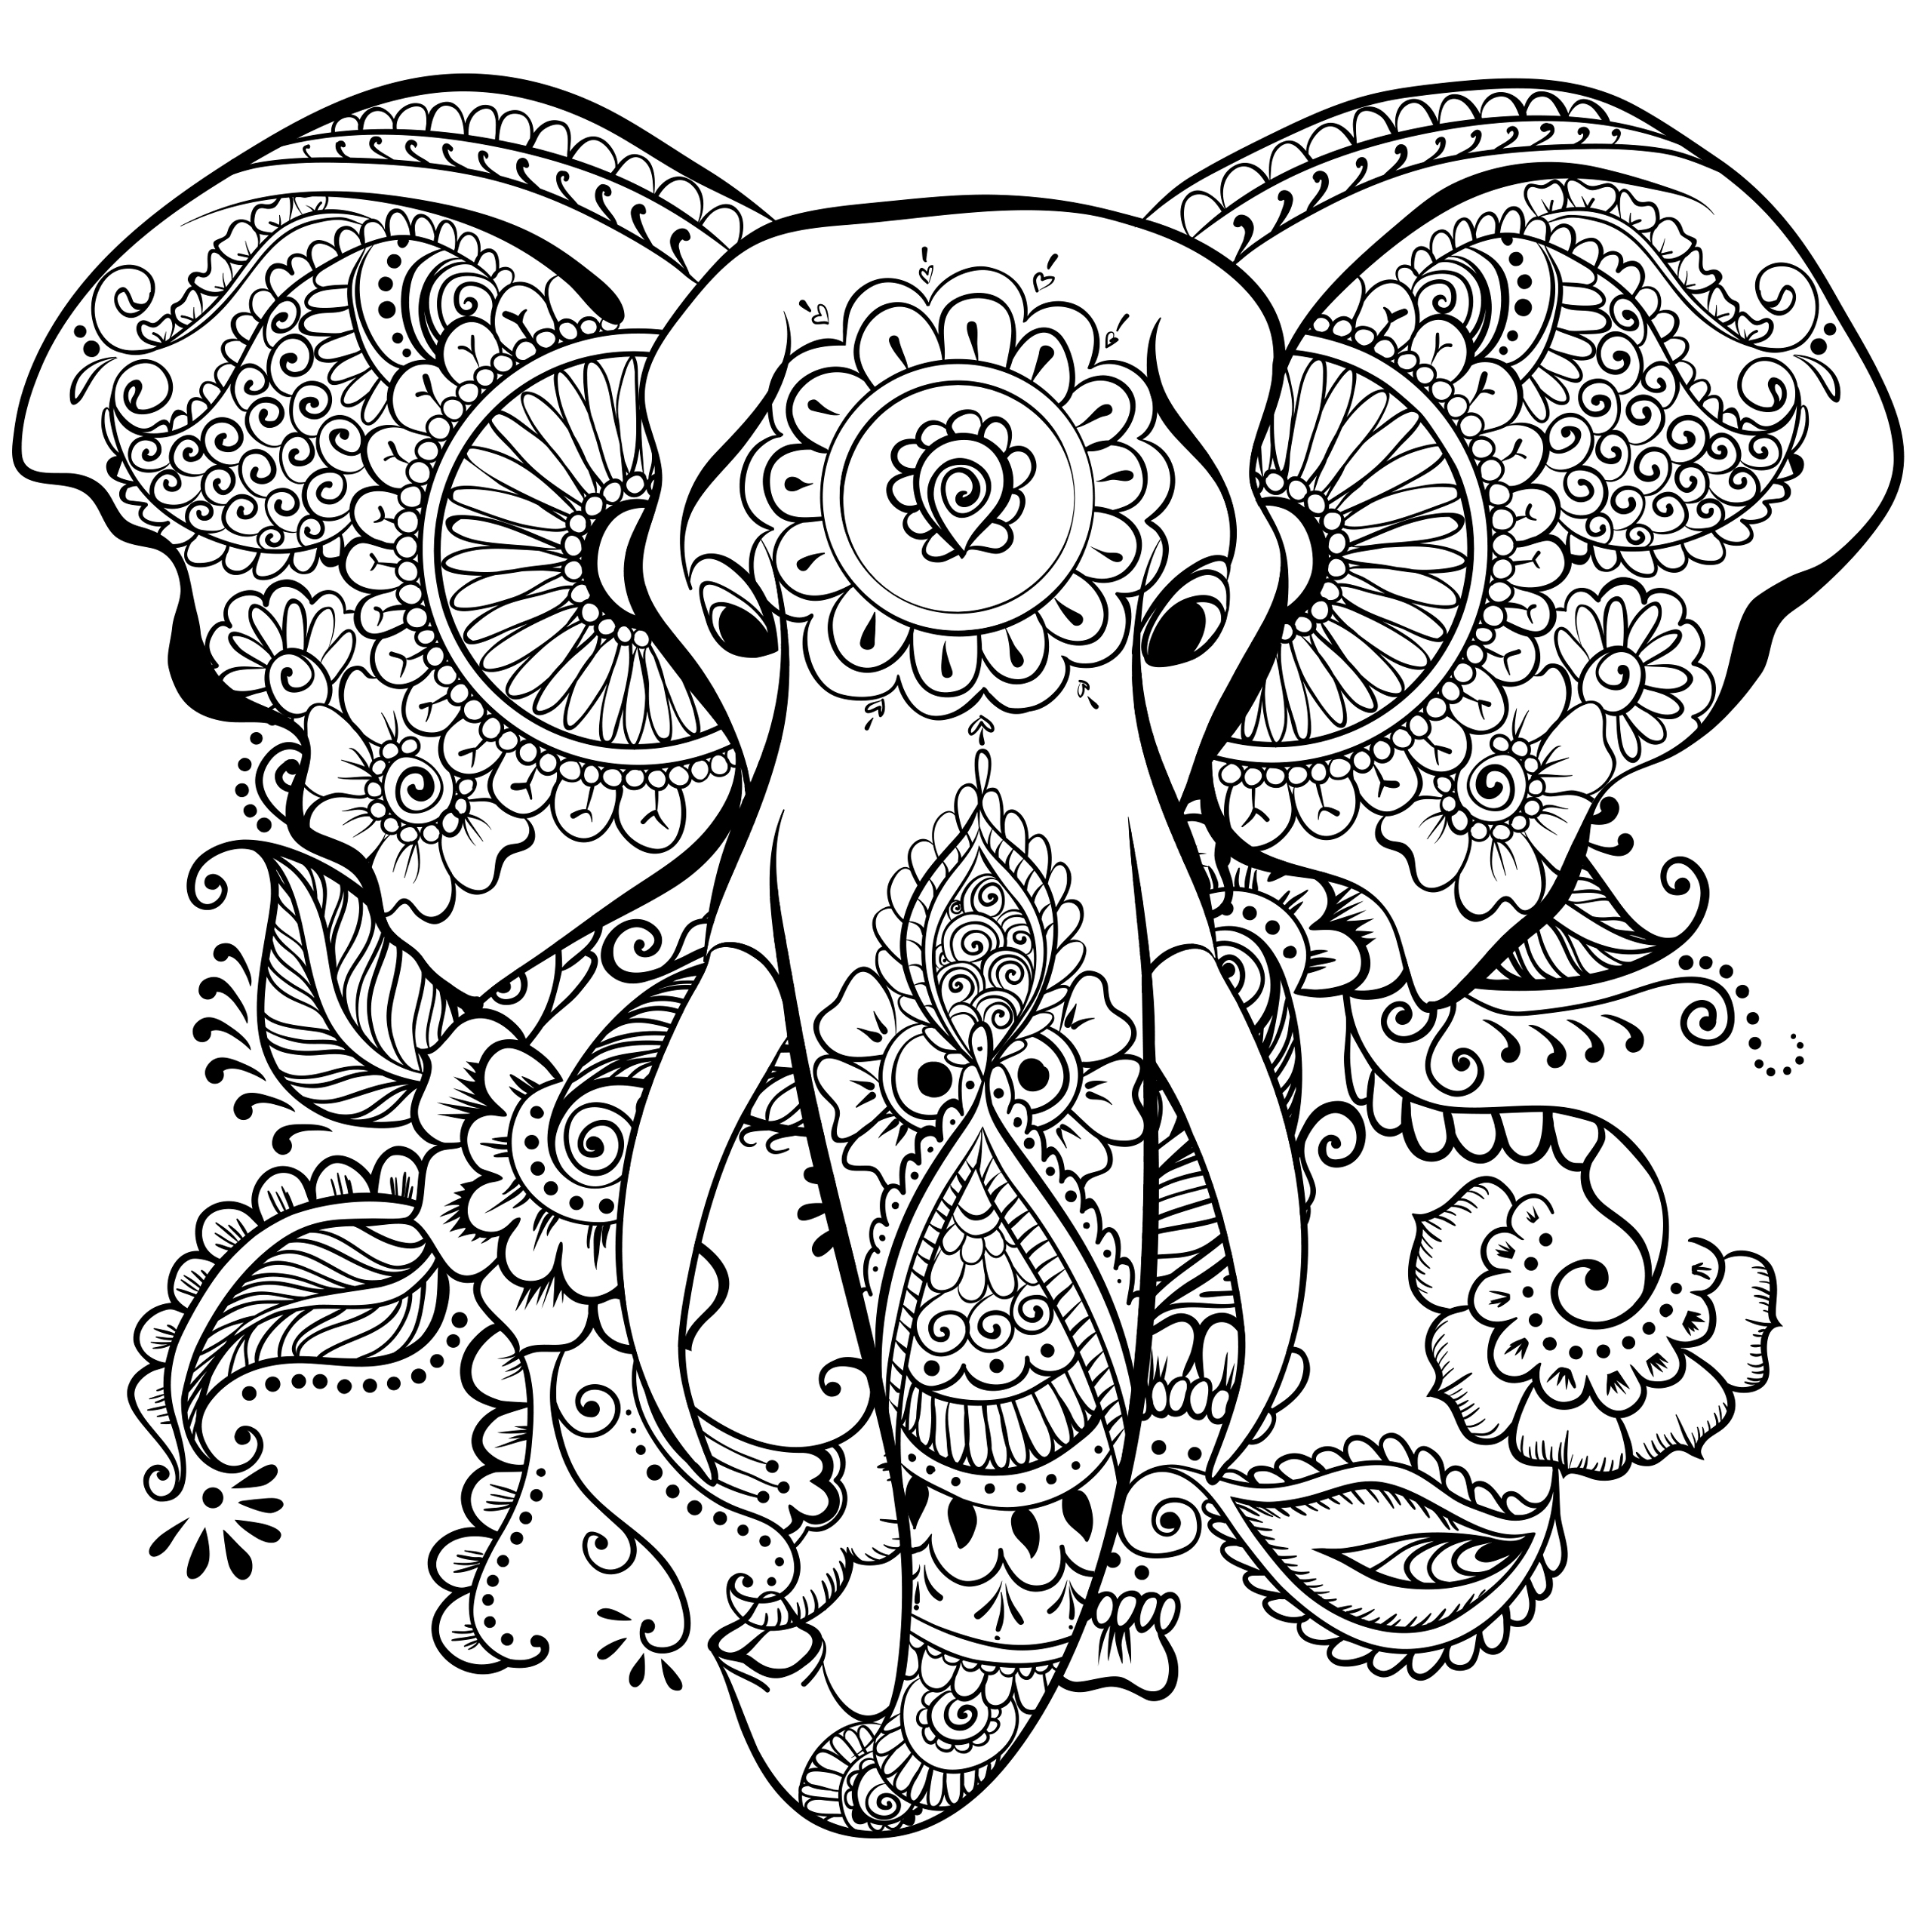 colouring pictures of elephant 63 adult coloring pages to nourish your mental visual colouring pictures elephant of